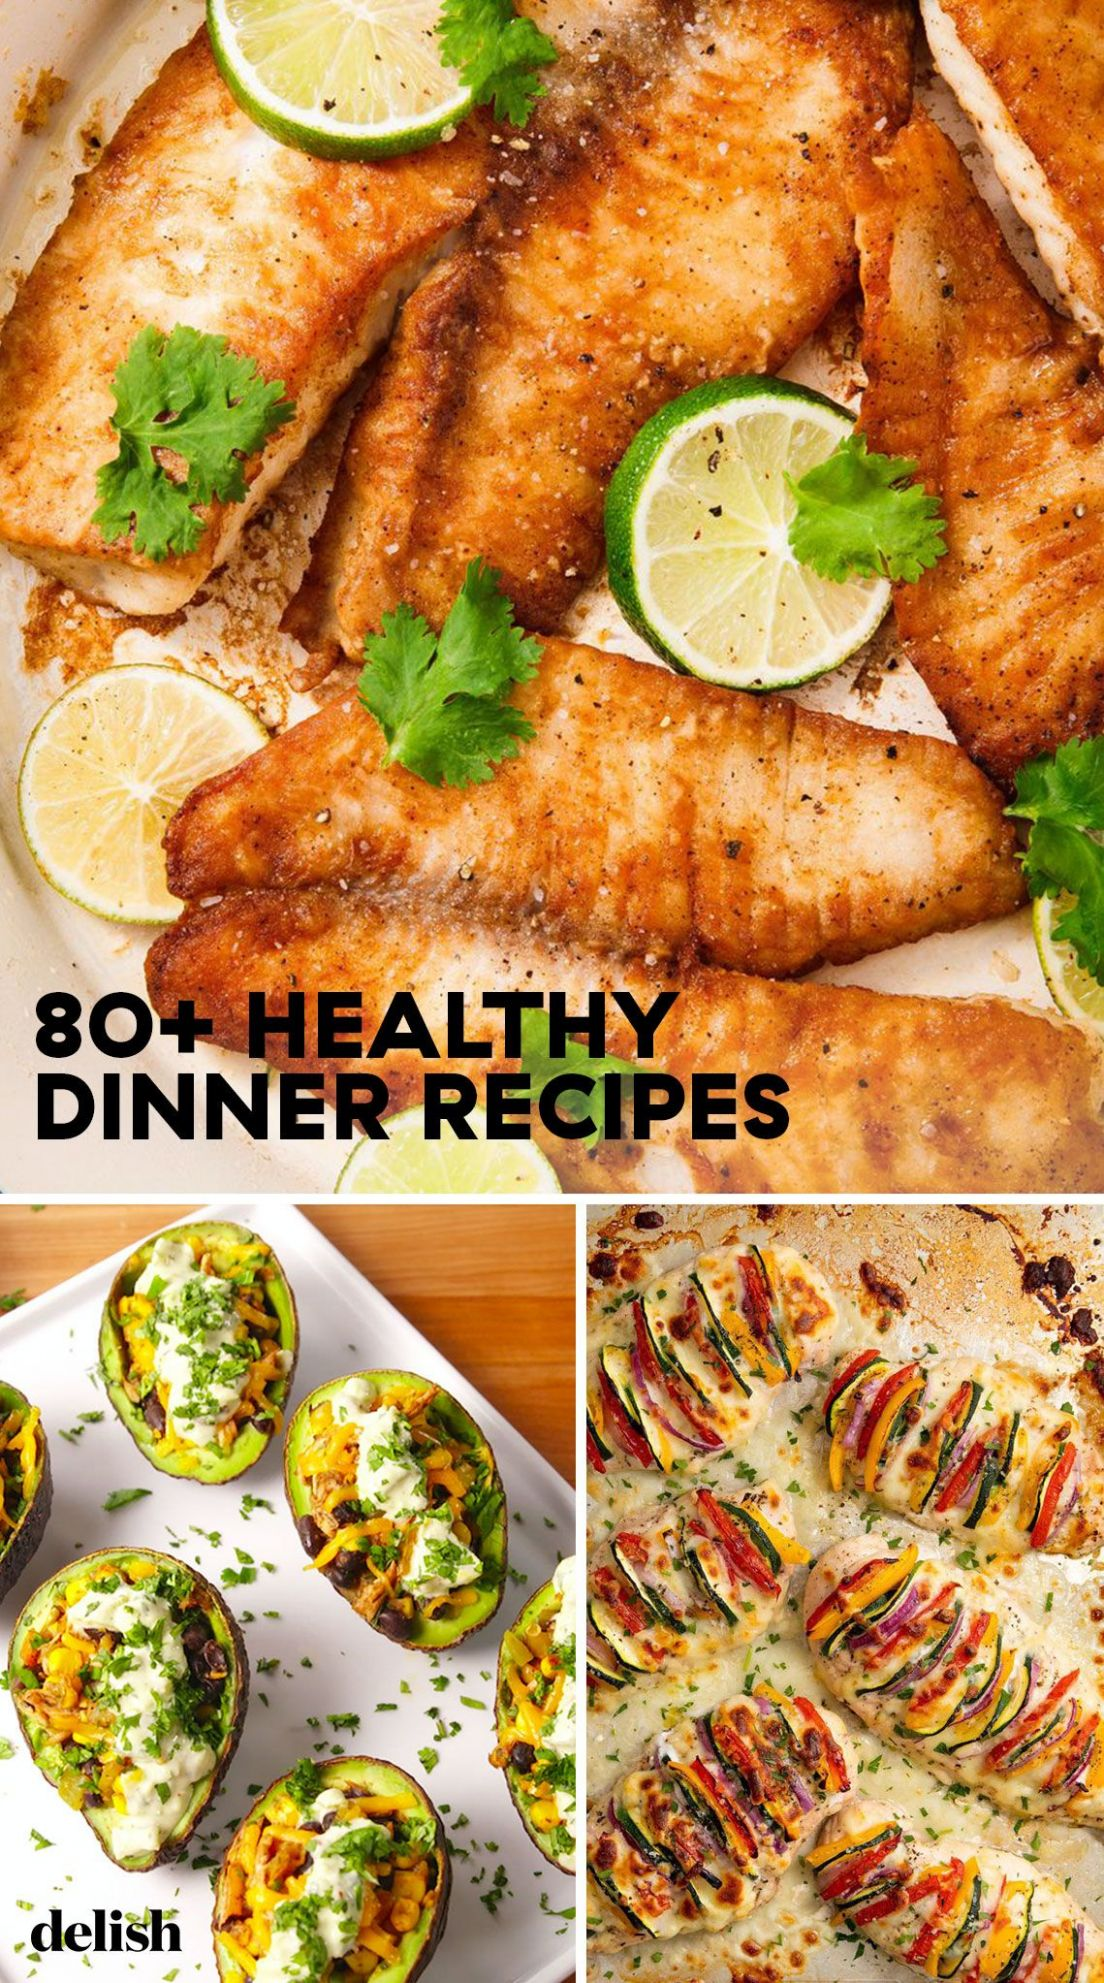 10+ Easy Healthy Dinner Ideas - Best Recipes for Healthy Dinners